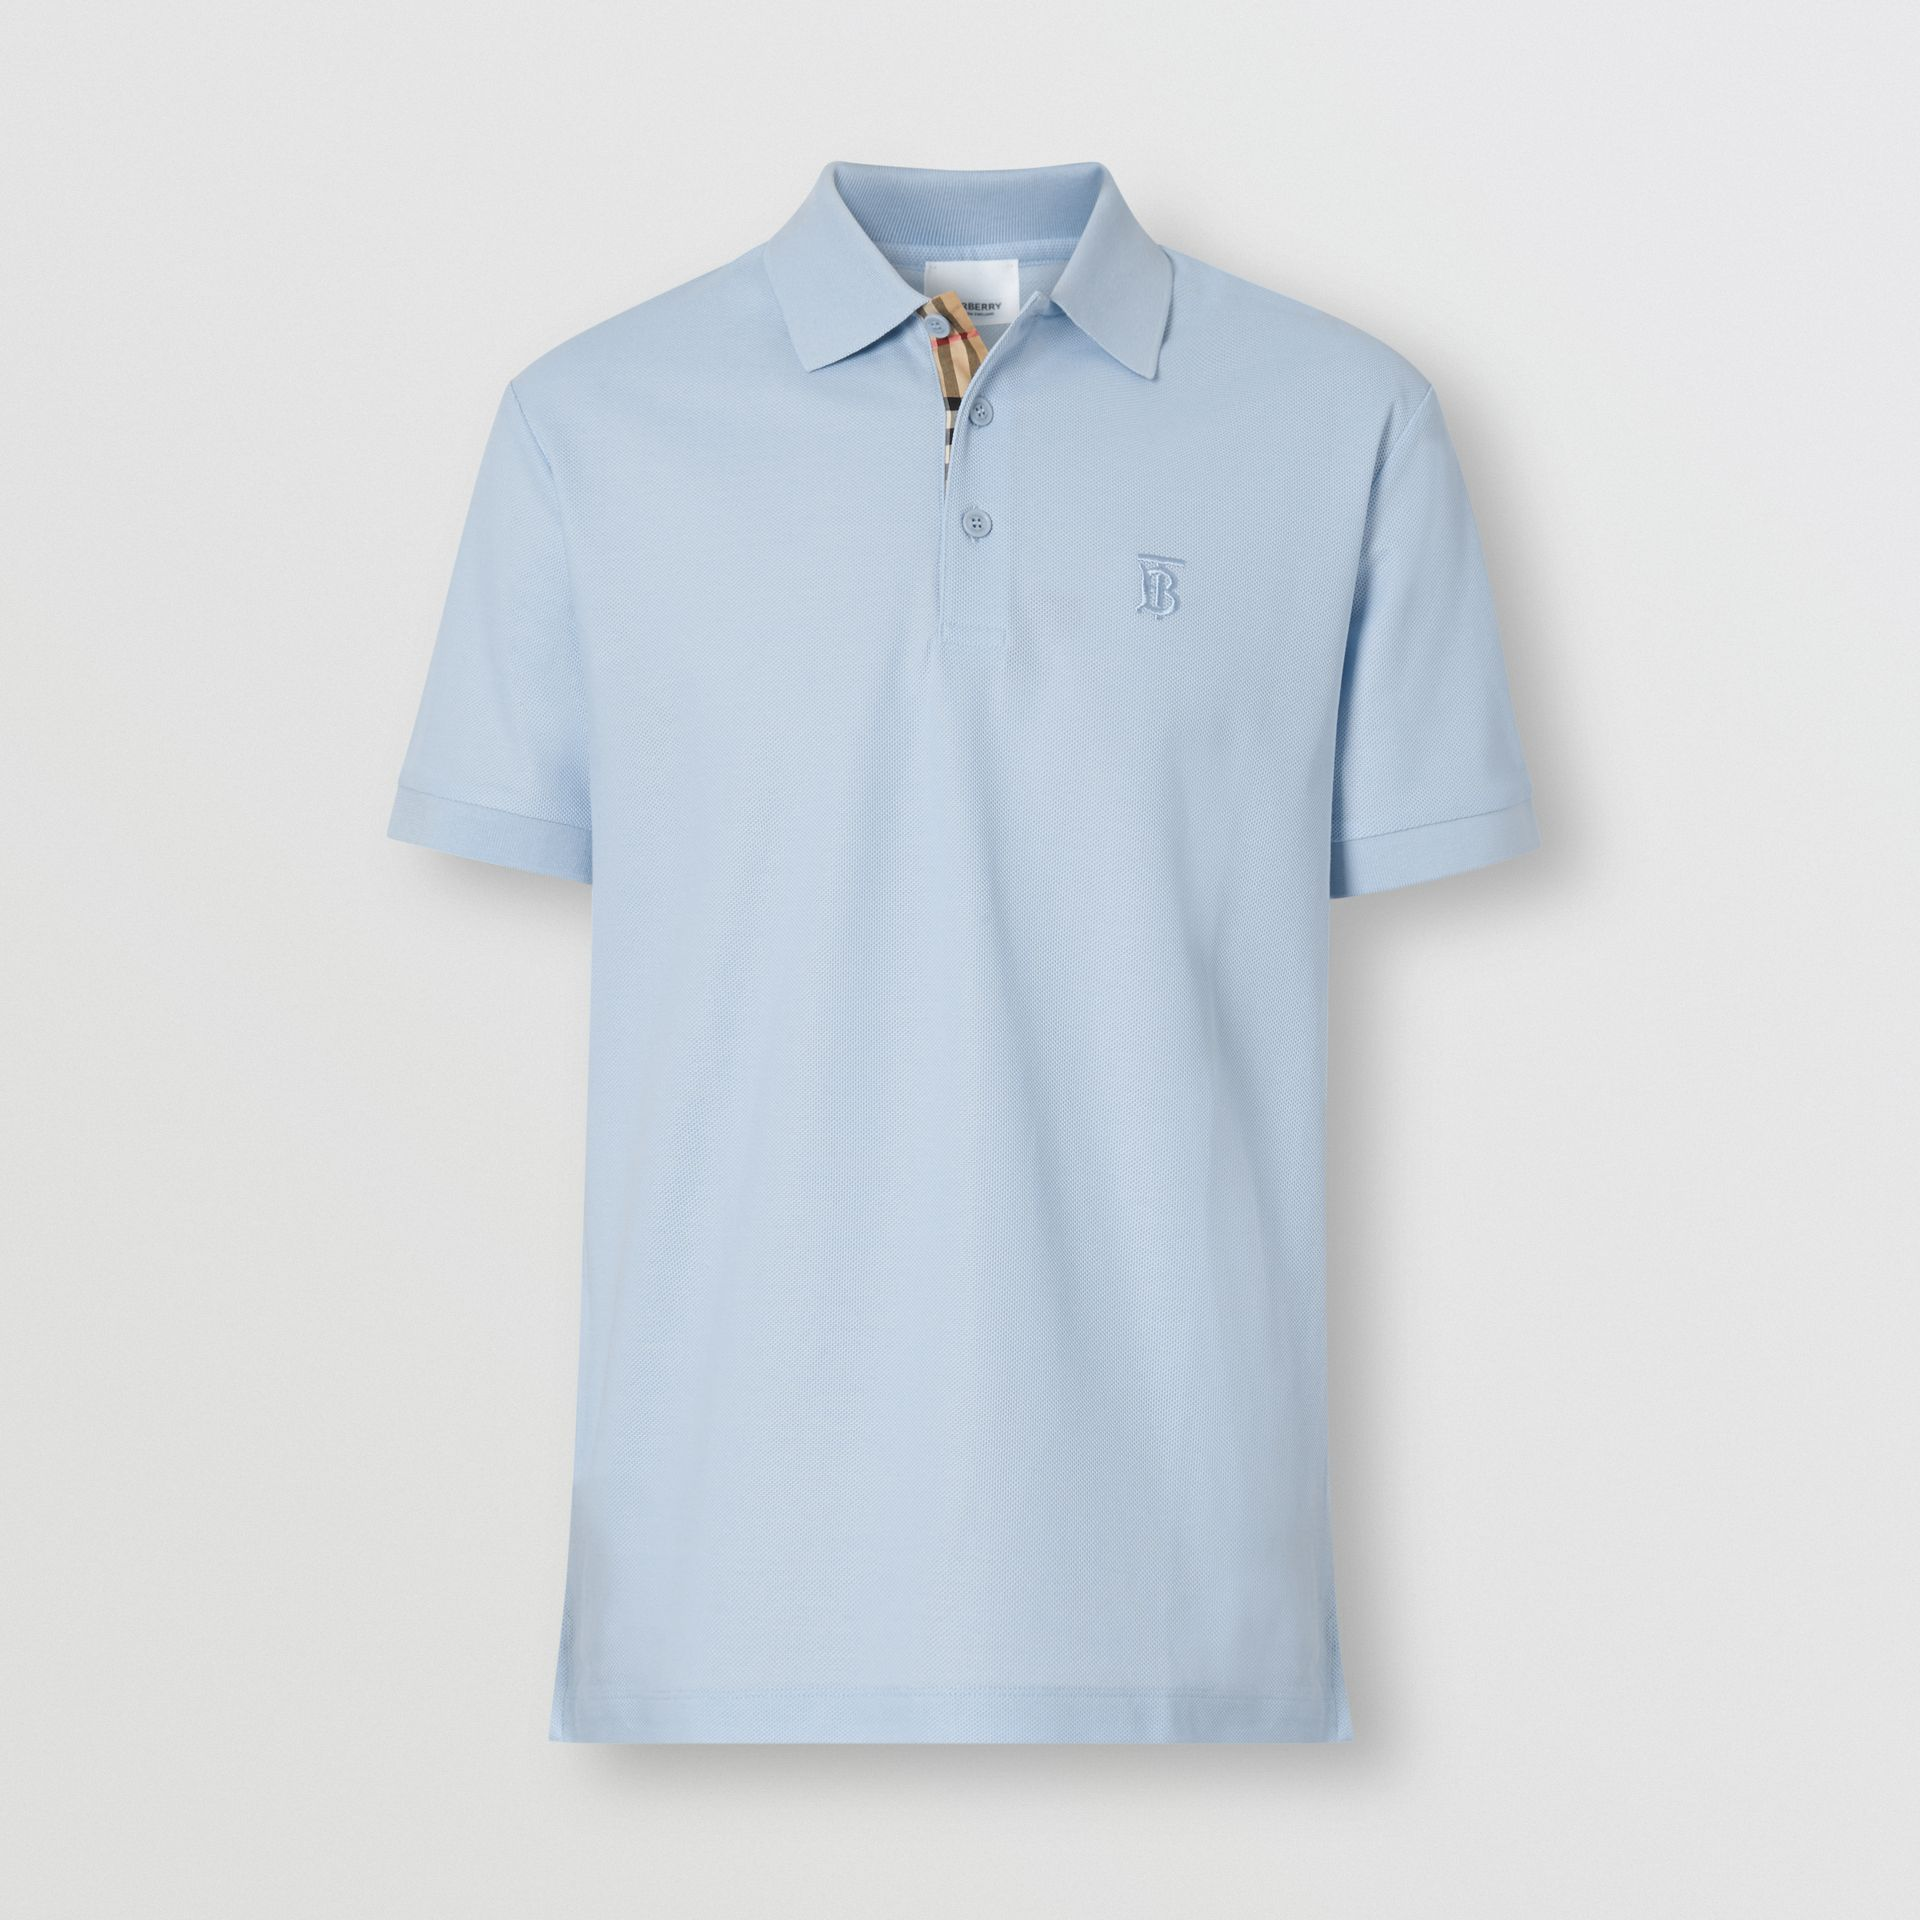 Monogram Motif Cotton Piqué Polo Shirt in Pale Blue - Men | Burberry - gallery image 3